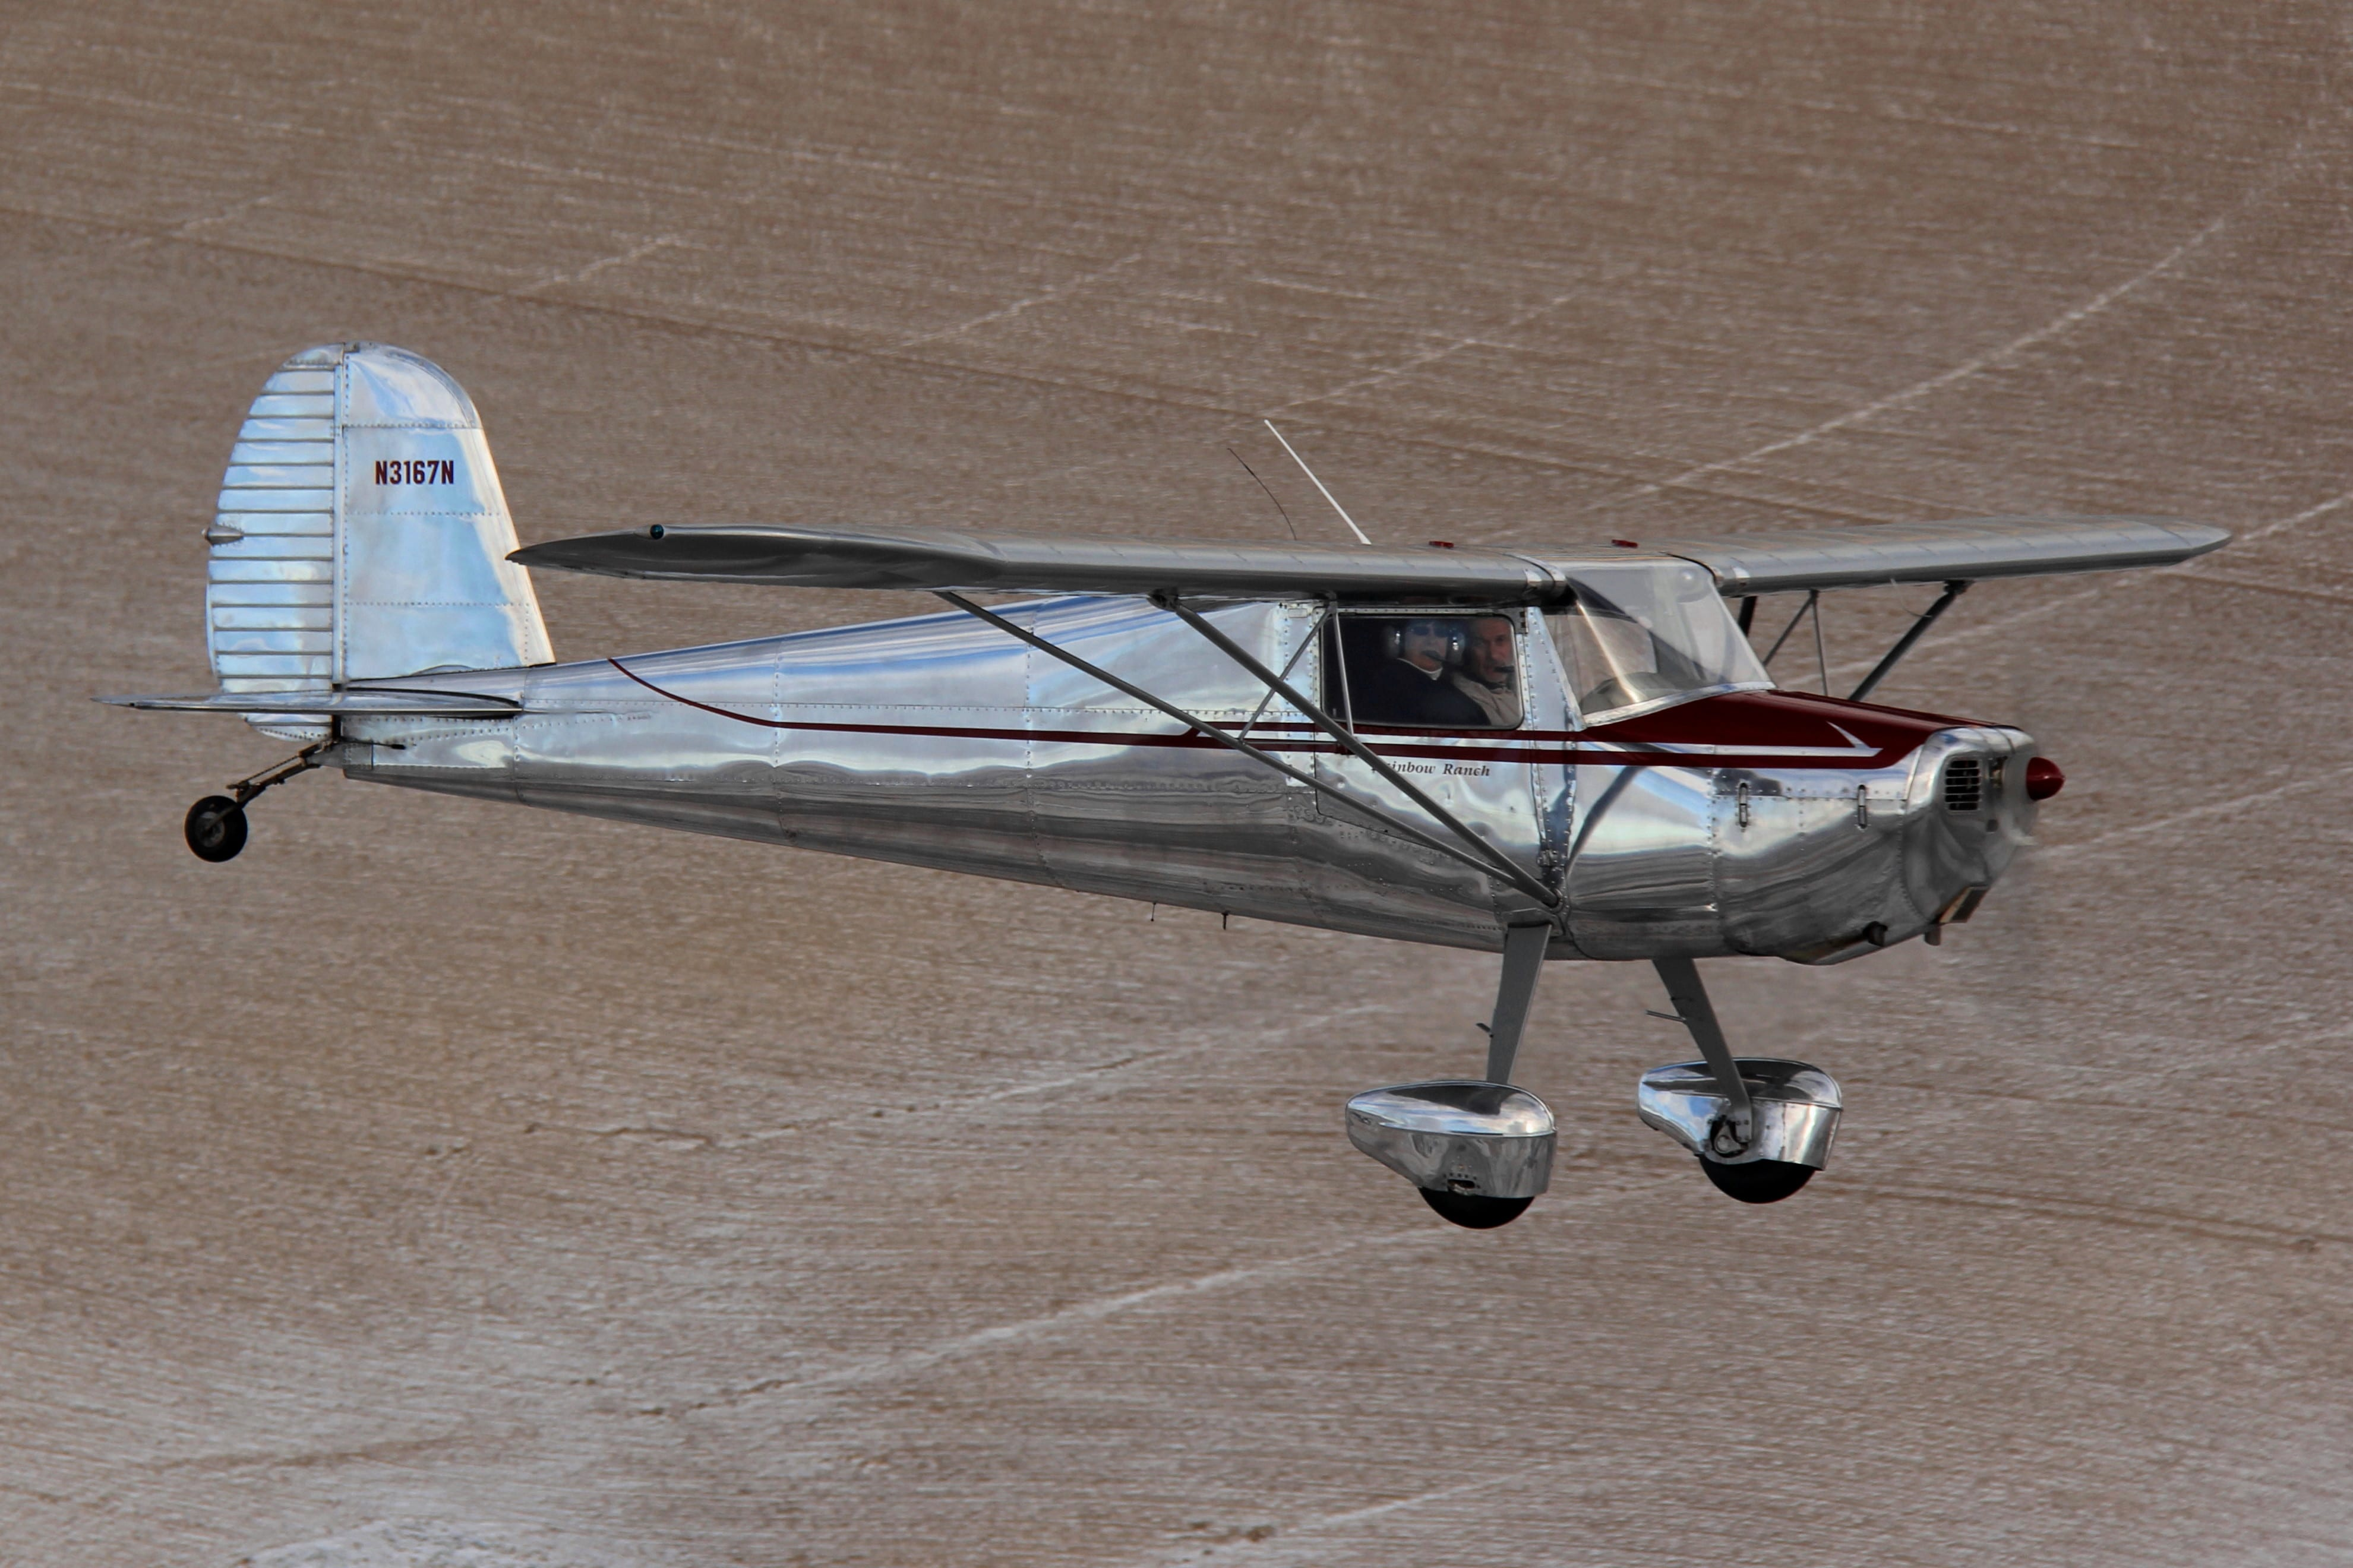 Bob and Jane Hoff relive their first date in the same Cessna 120. Photo by Thomas Hoff.